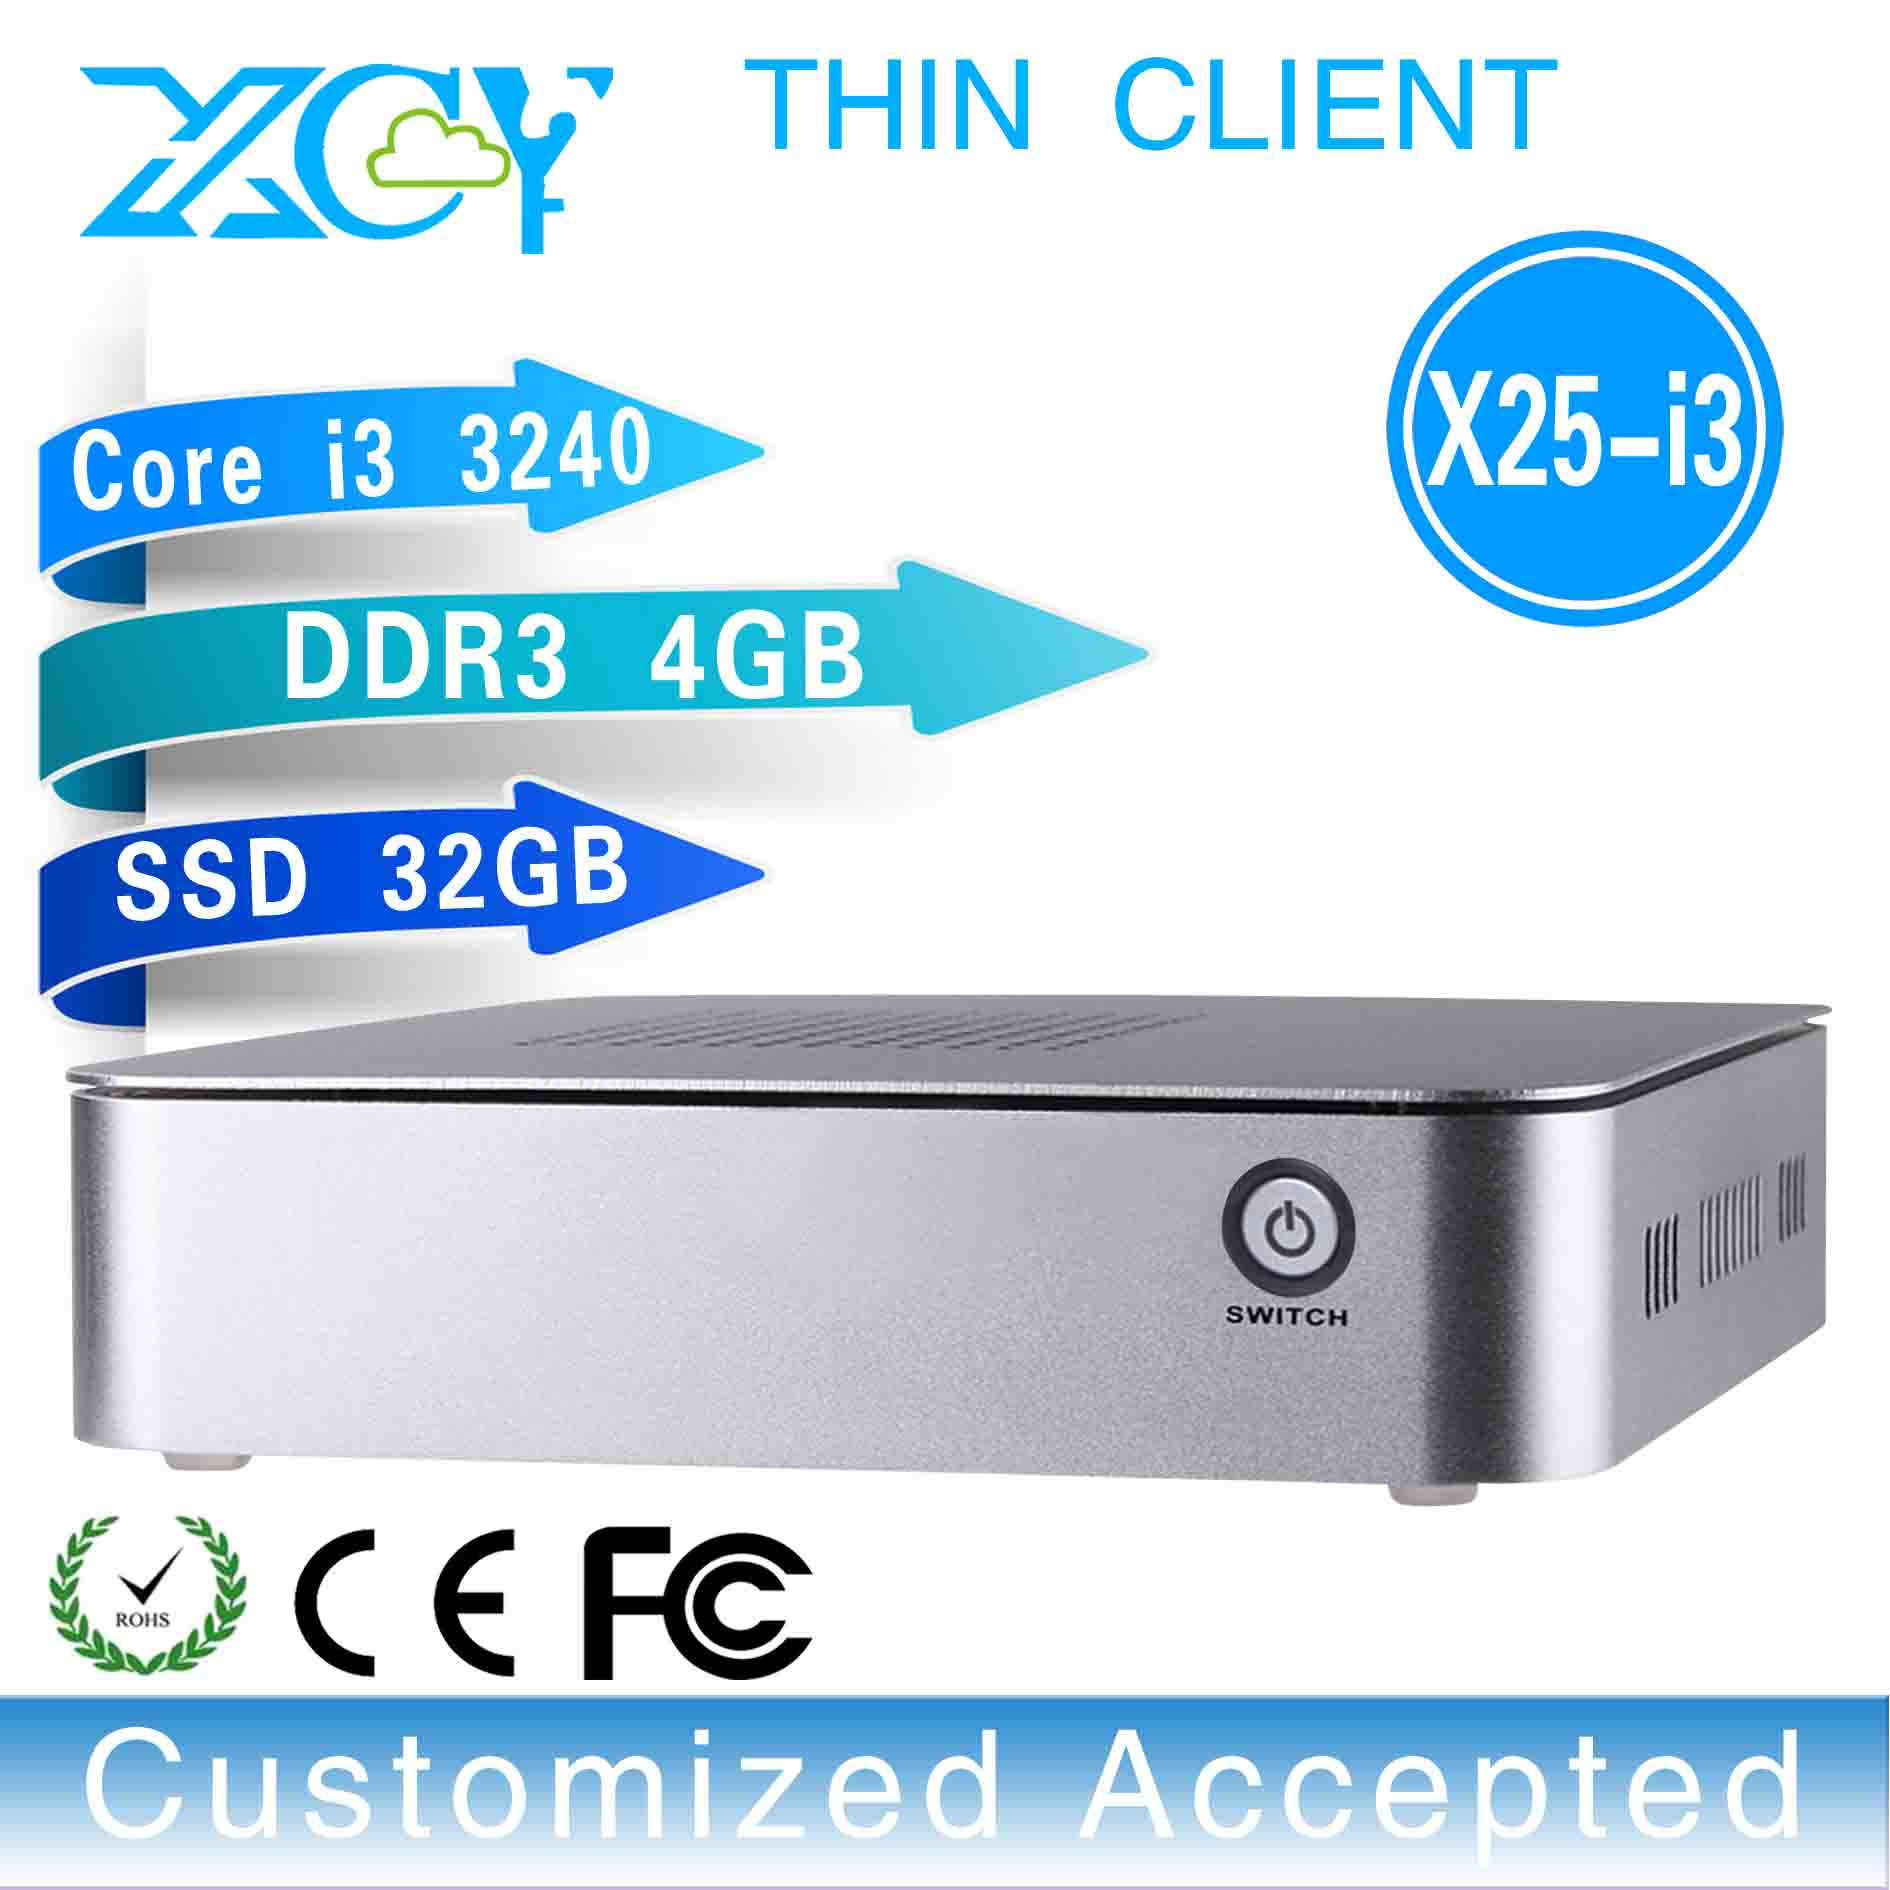 High Config CPU and Graphics Card core mini pc with hdmi X25-I3,support Ubuntu Linux 12.04,computer input output devices(China (Mainland))